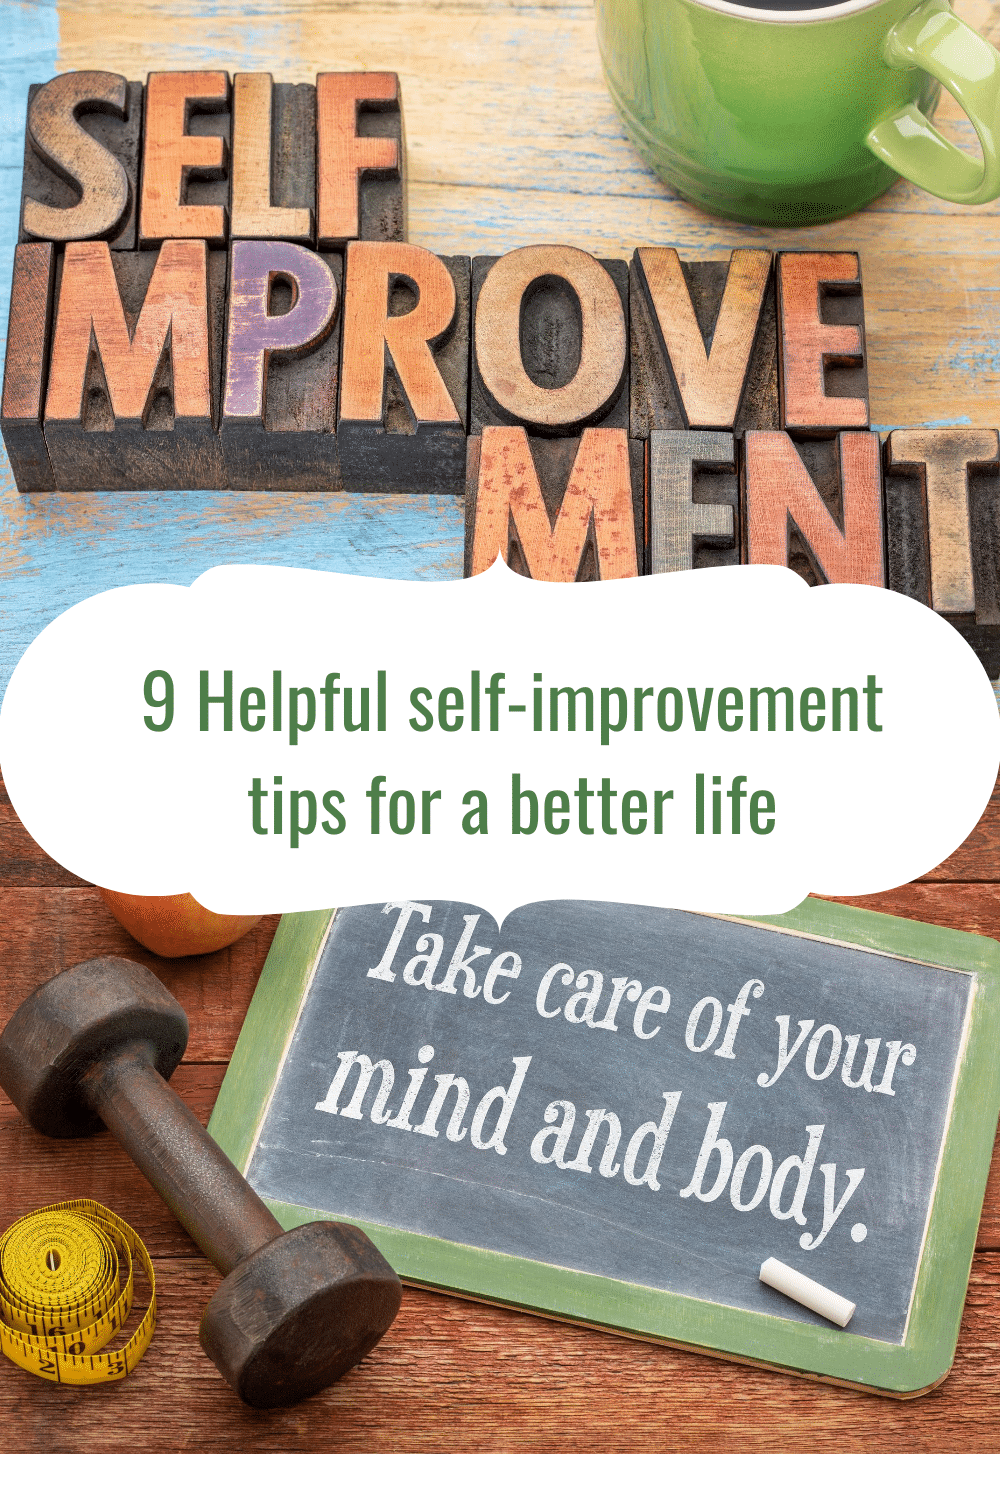 9 Helpful self-improvement tips for a better life